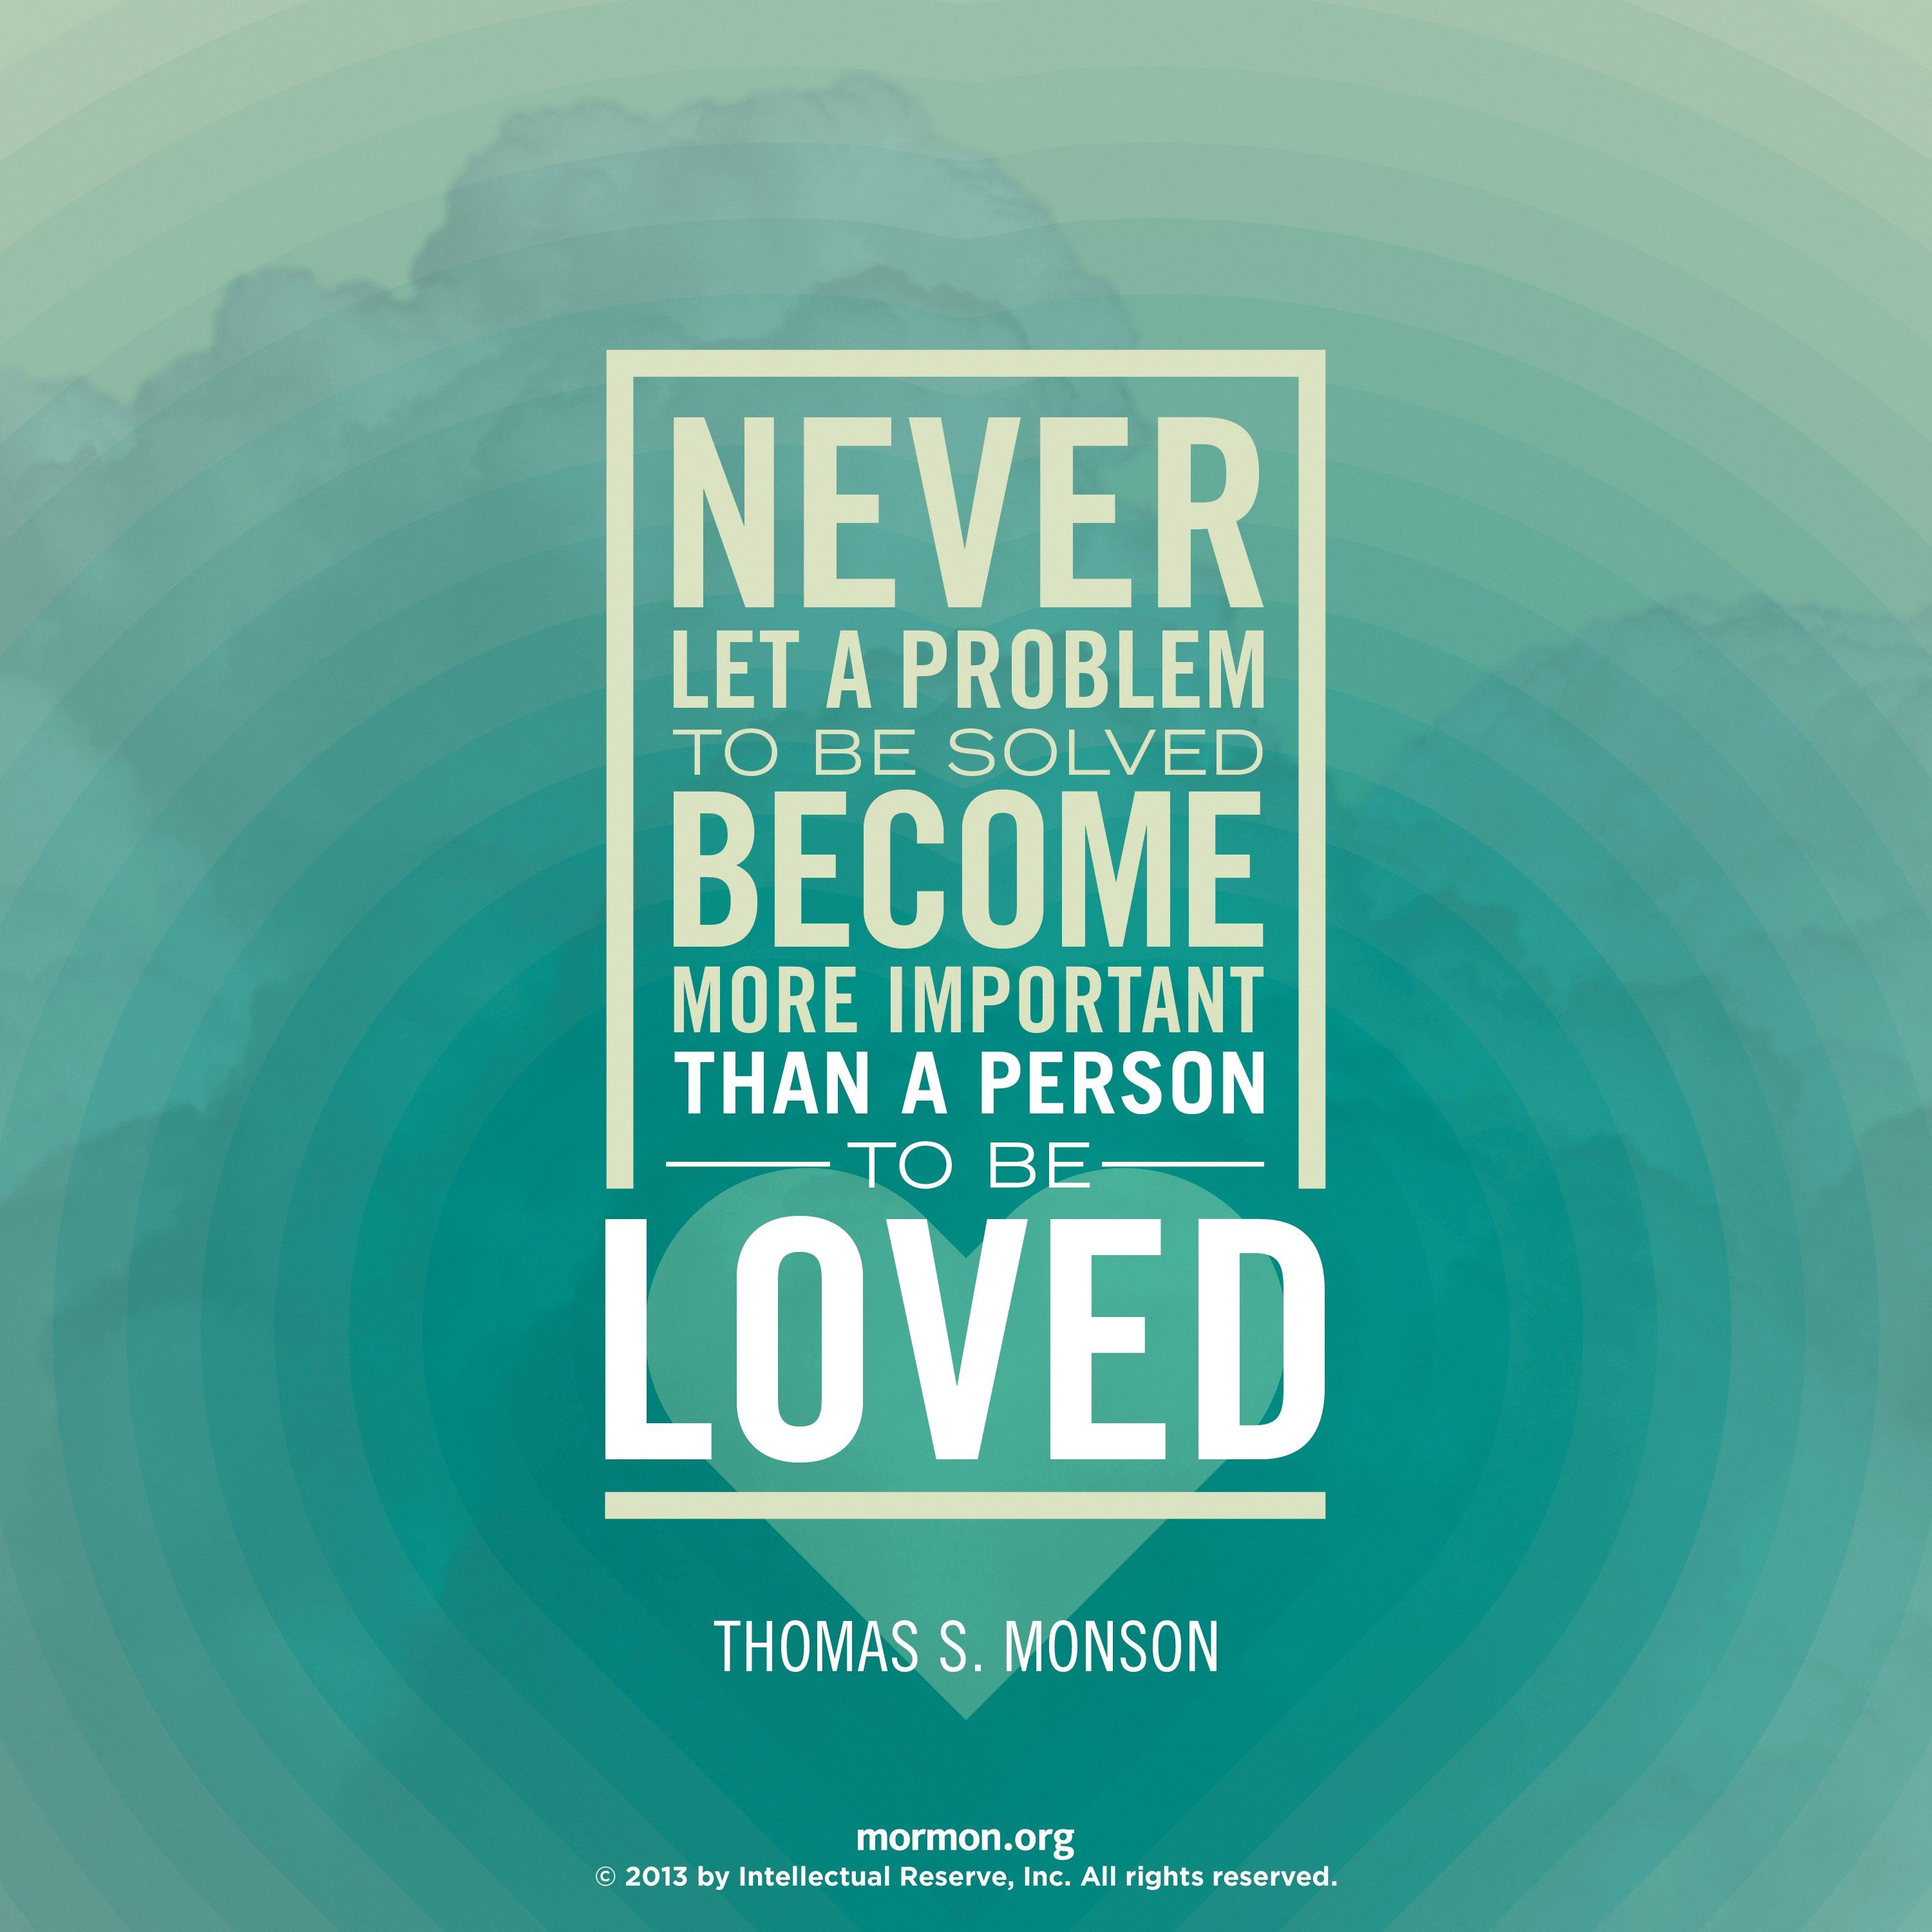 """""""Never let a problem to be solved become more important than a person to be loved.""""—President Thomas S. Monson, """"Finding Joy in the Journey"""""""